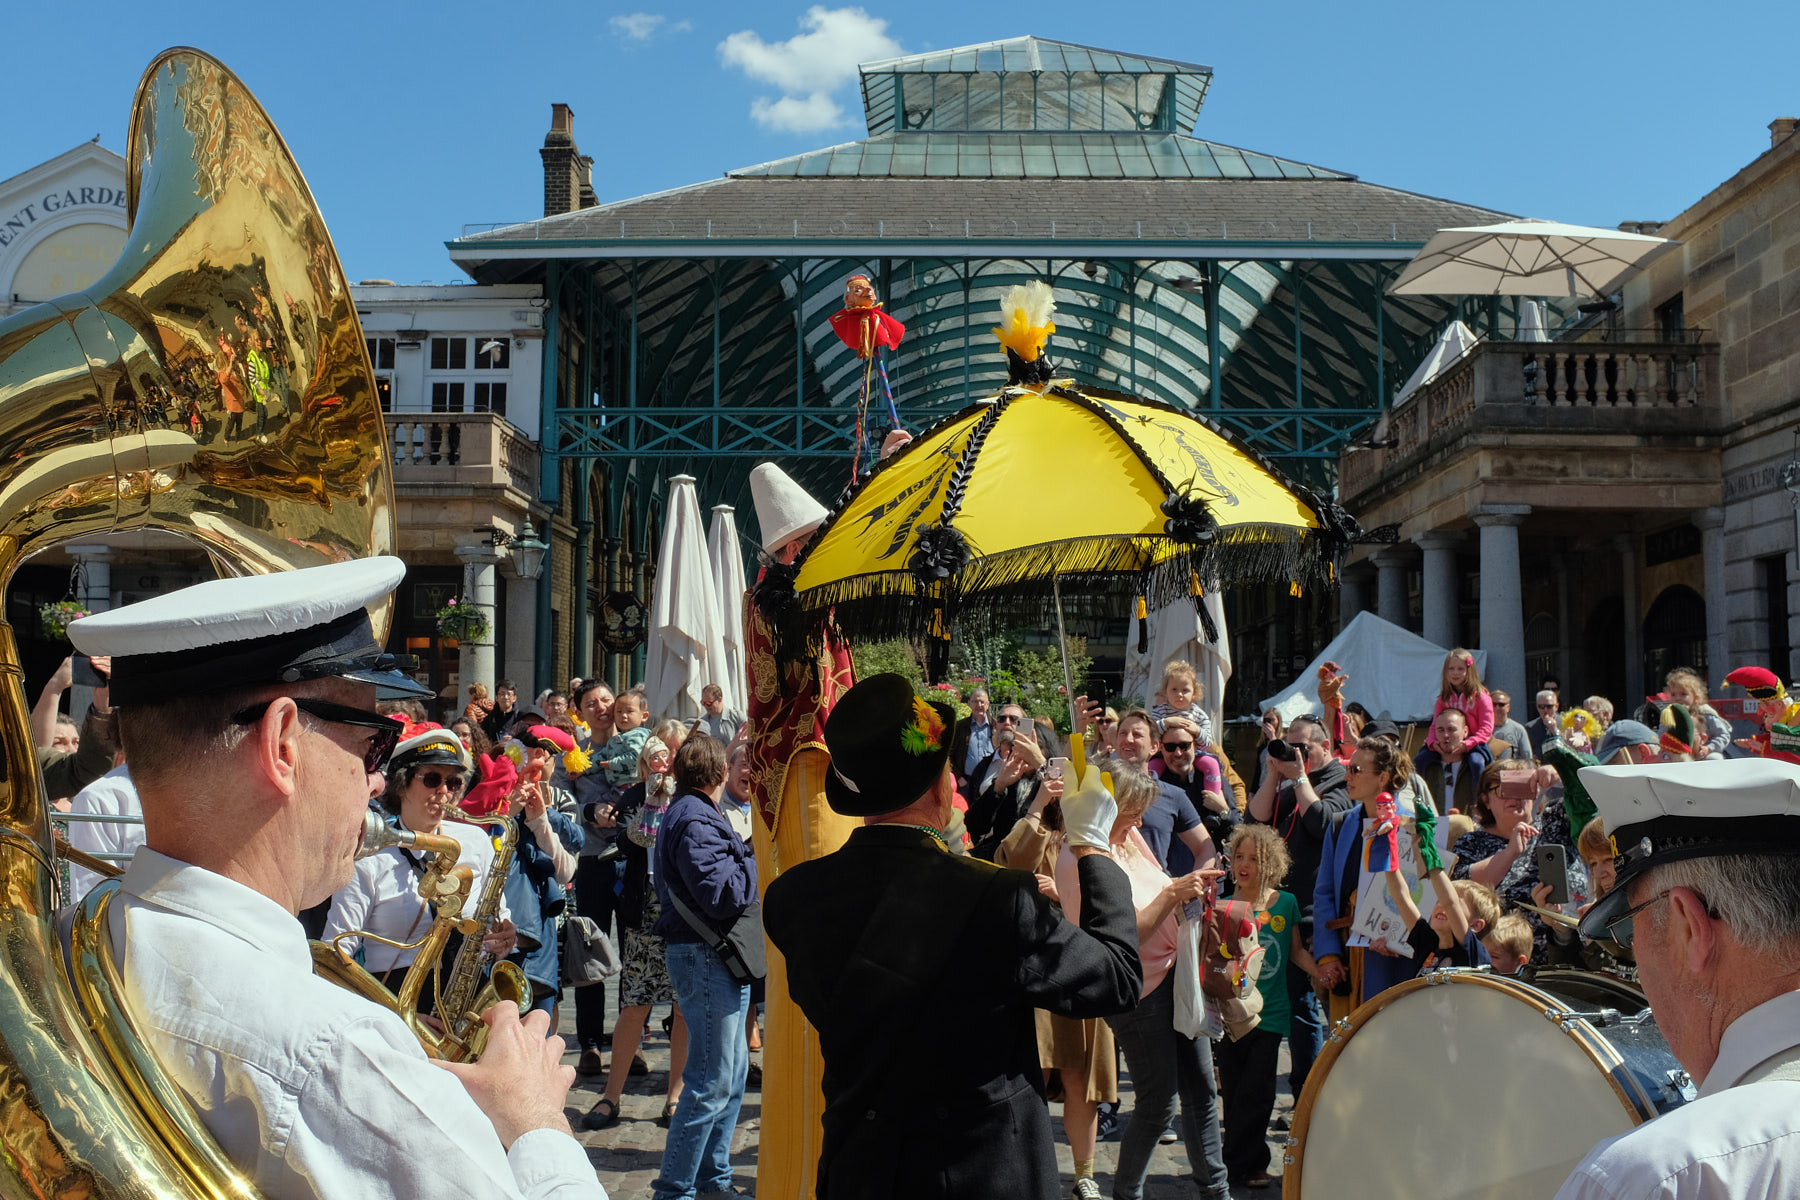 The Superior Brass Band hype the crowd on the Covent Garden Piazza.